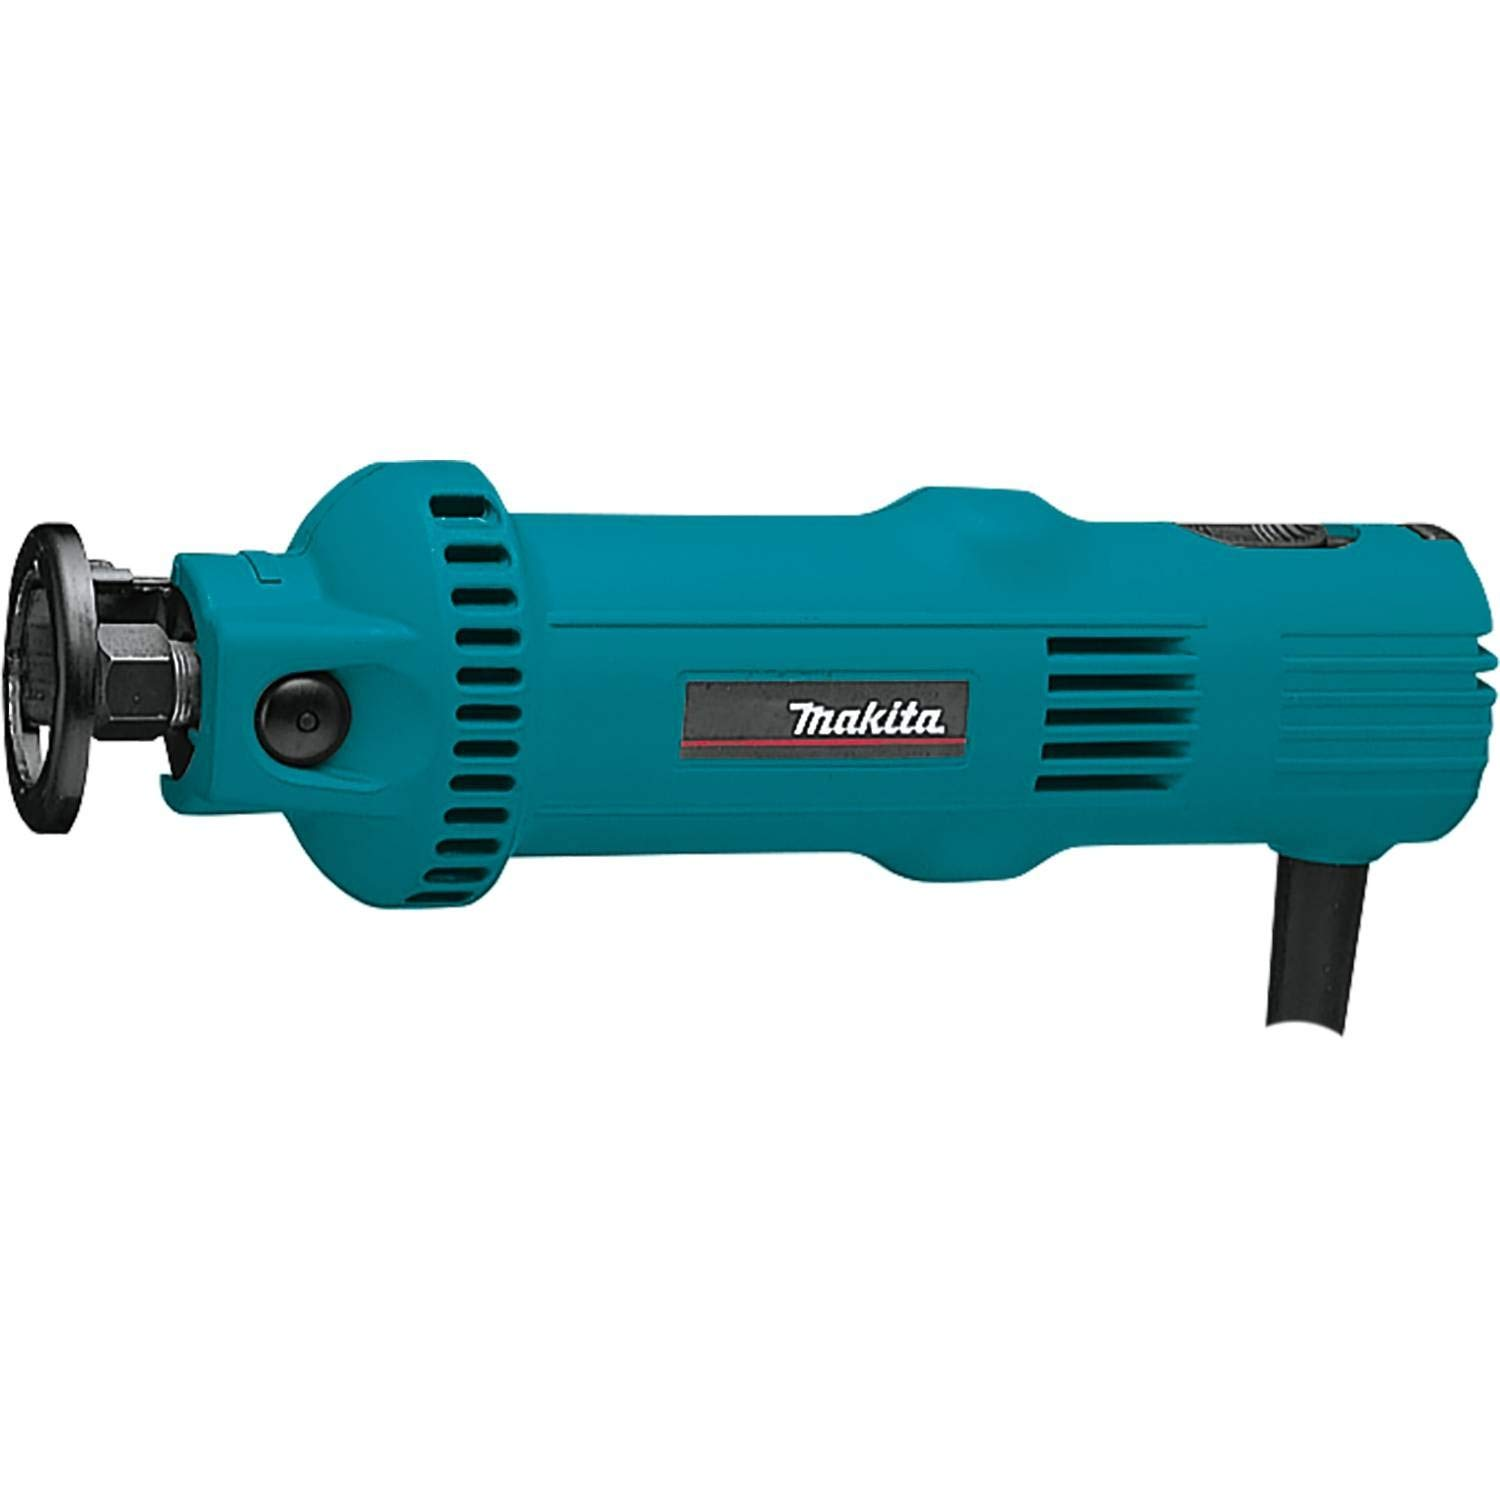 Spiral Saw, 32, 000 RPM, 5.0A, 9-7/8 In. L by Makita